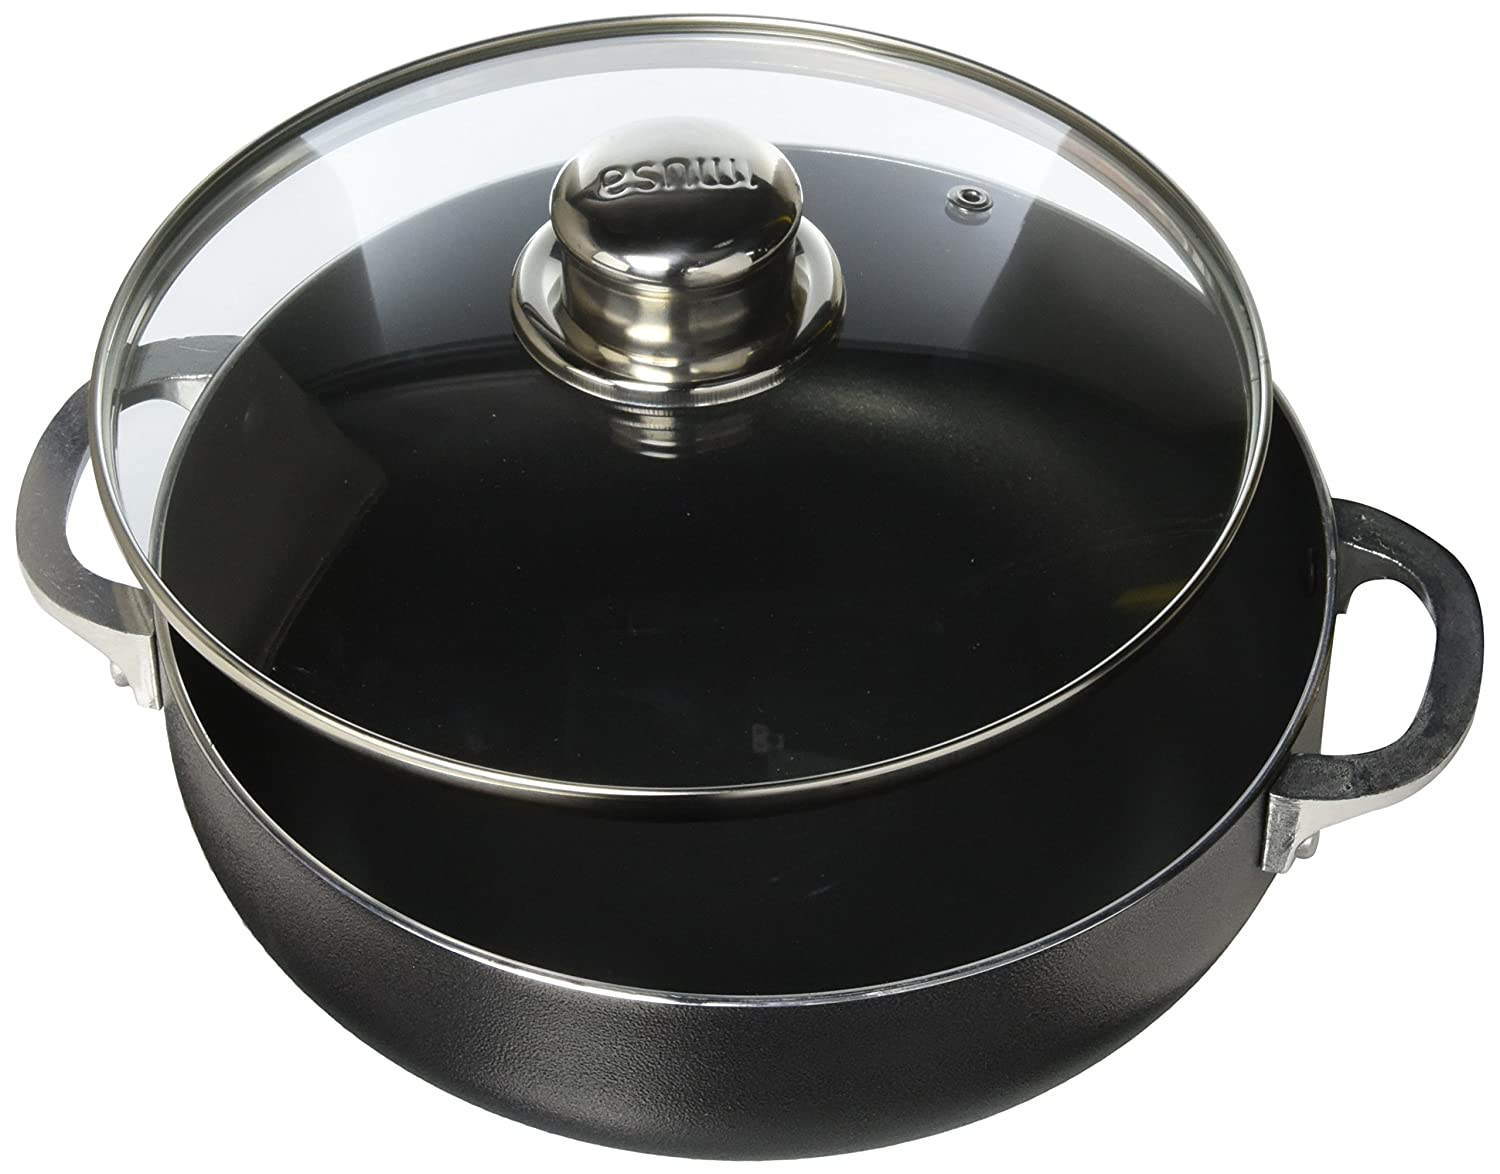 IMUSA USA CHI-00084 Nonstick Charcoal Caldero (Dutch Oven) with Glass Lid